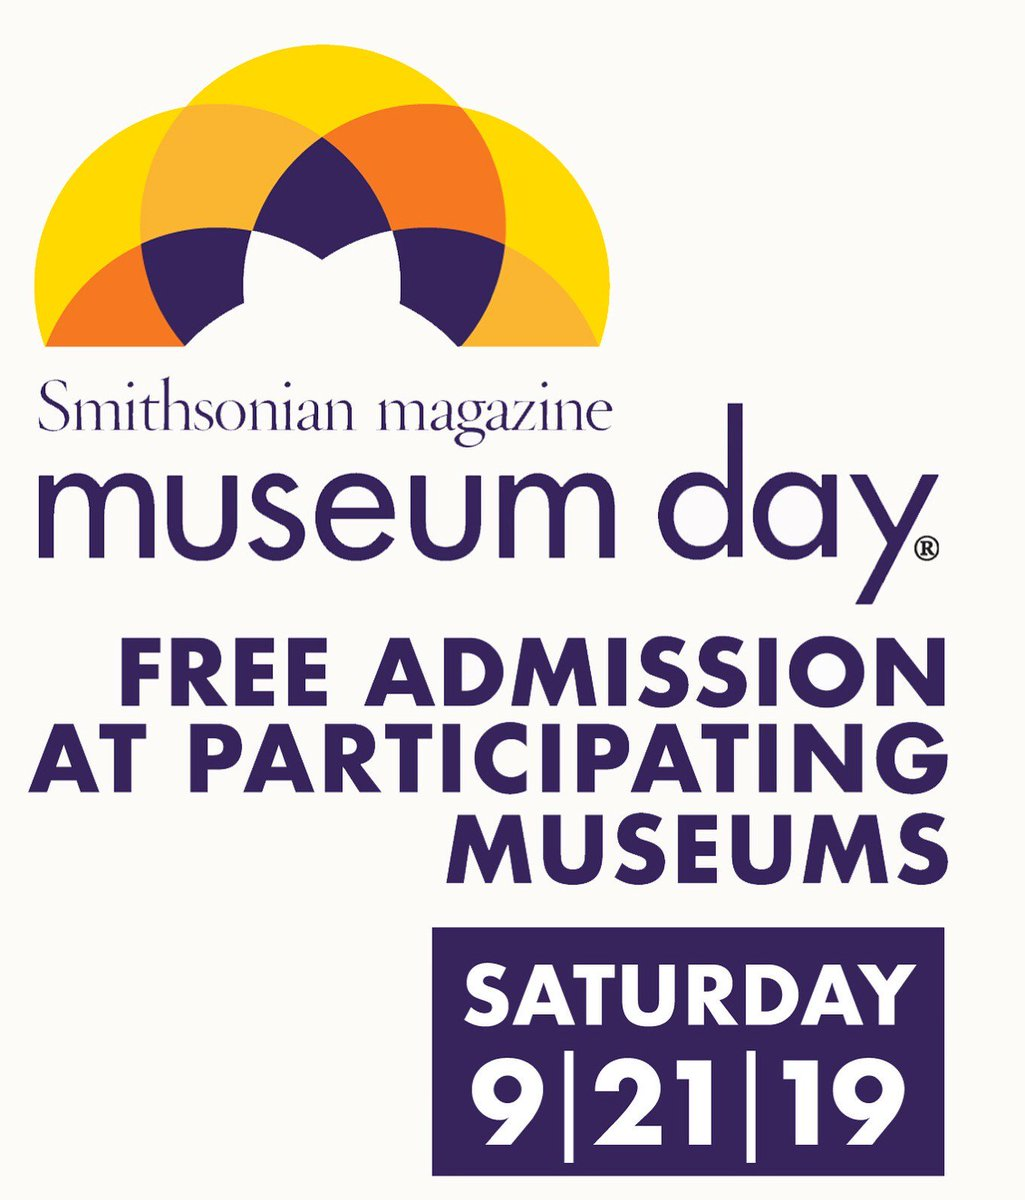 This weekend is @SmithsonianMags #MuseumDay! THis annual event is a celebration of cultural institutions across the country & featured FREE admission to participating museums. Learn more here: smithsonianmag.com/museumday/muse…